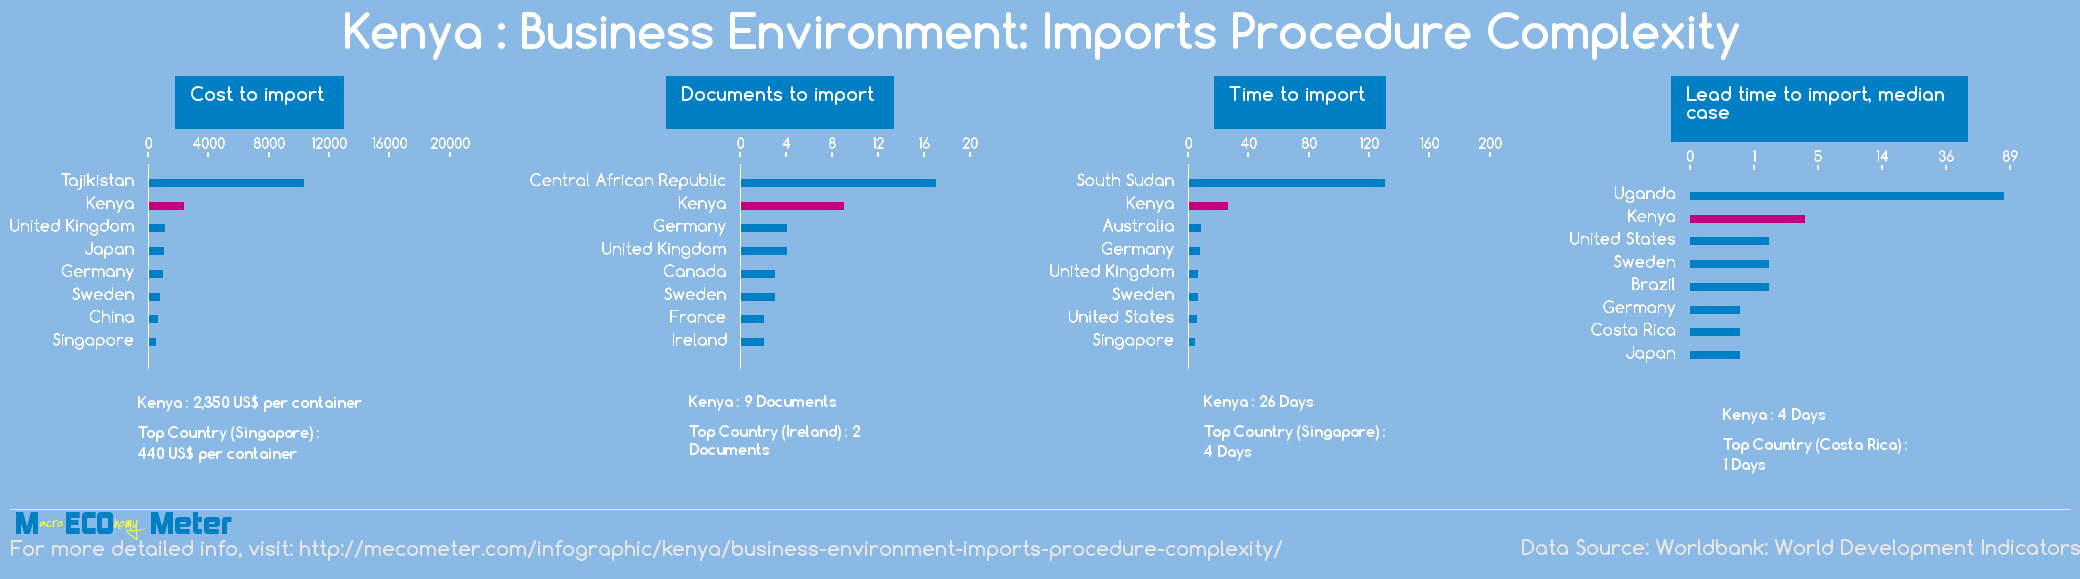 Kenya : Business Environment: Imports Procedure Complexity